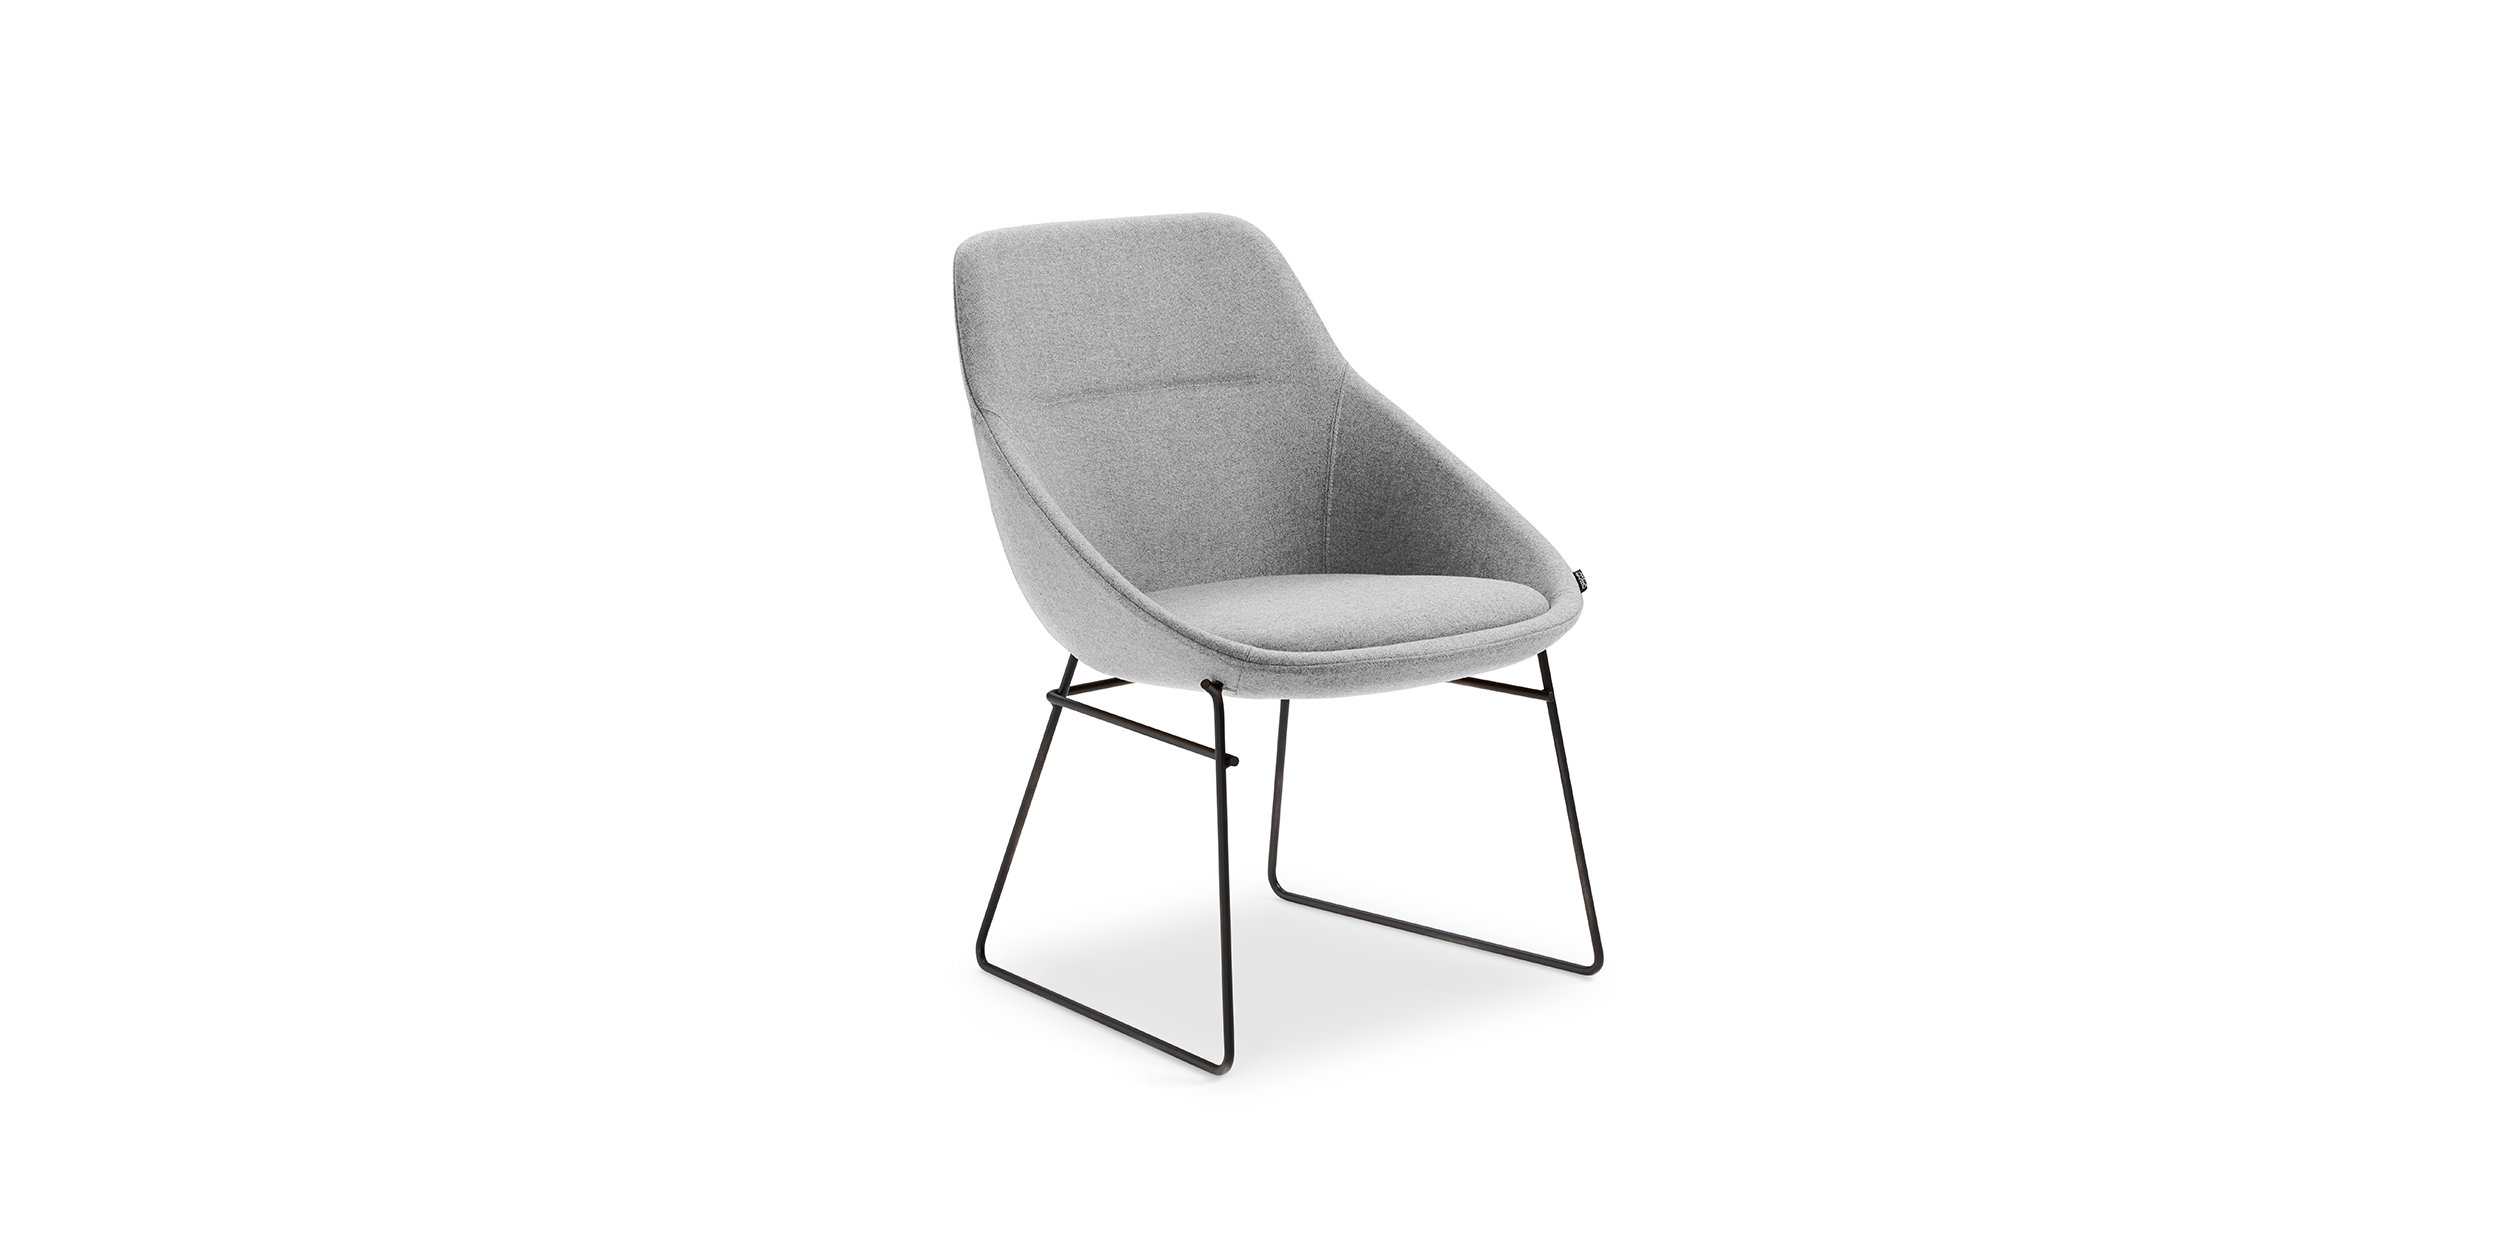 Ezy Low, Chair by Christophe Pillet